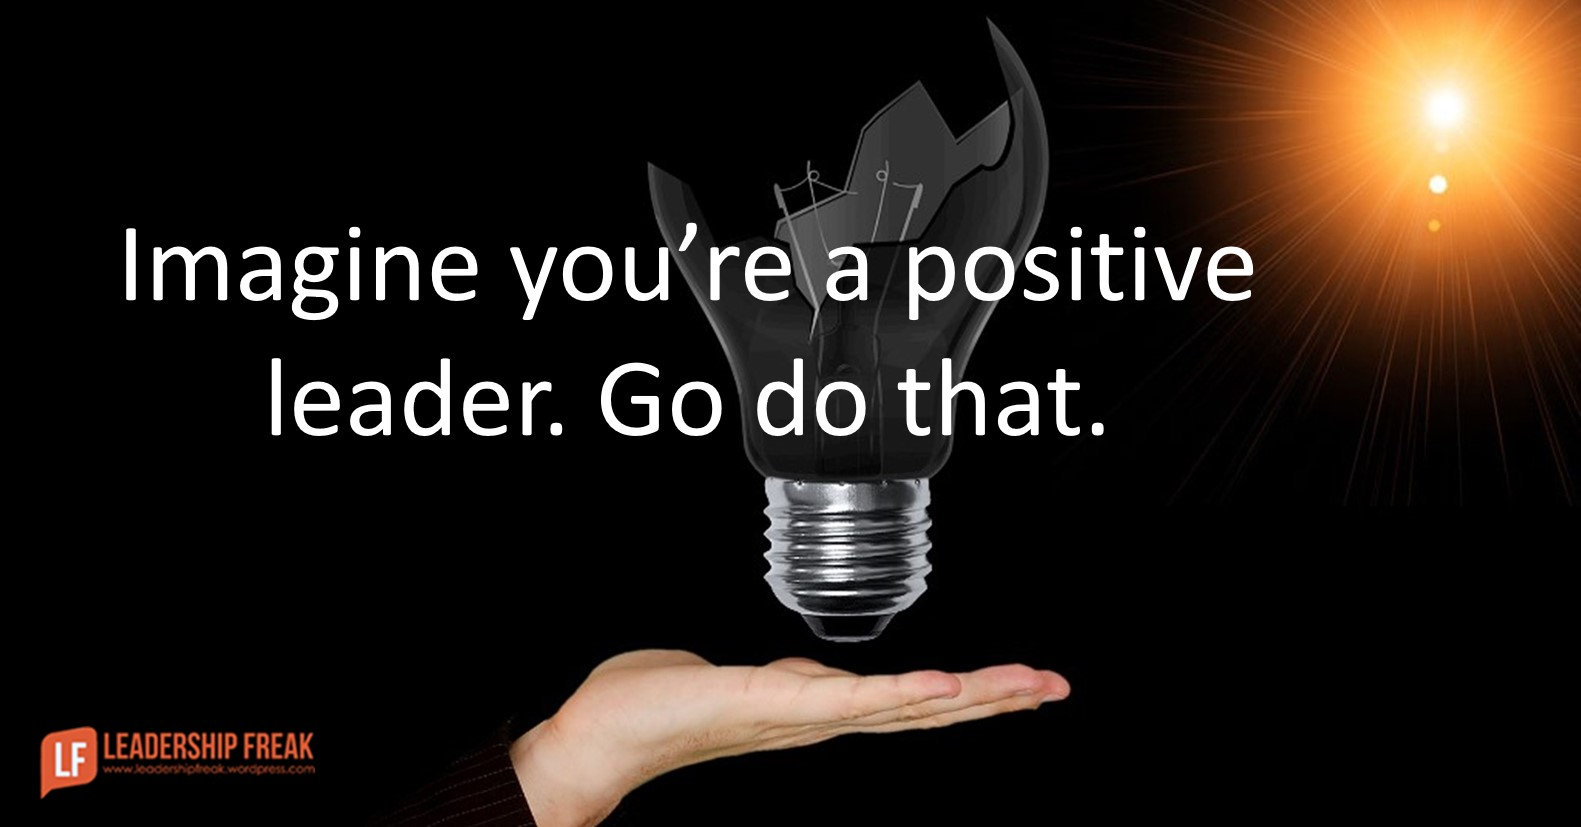 How to become positive